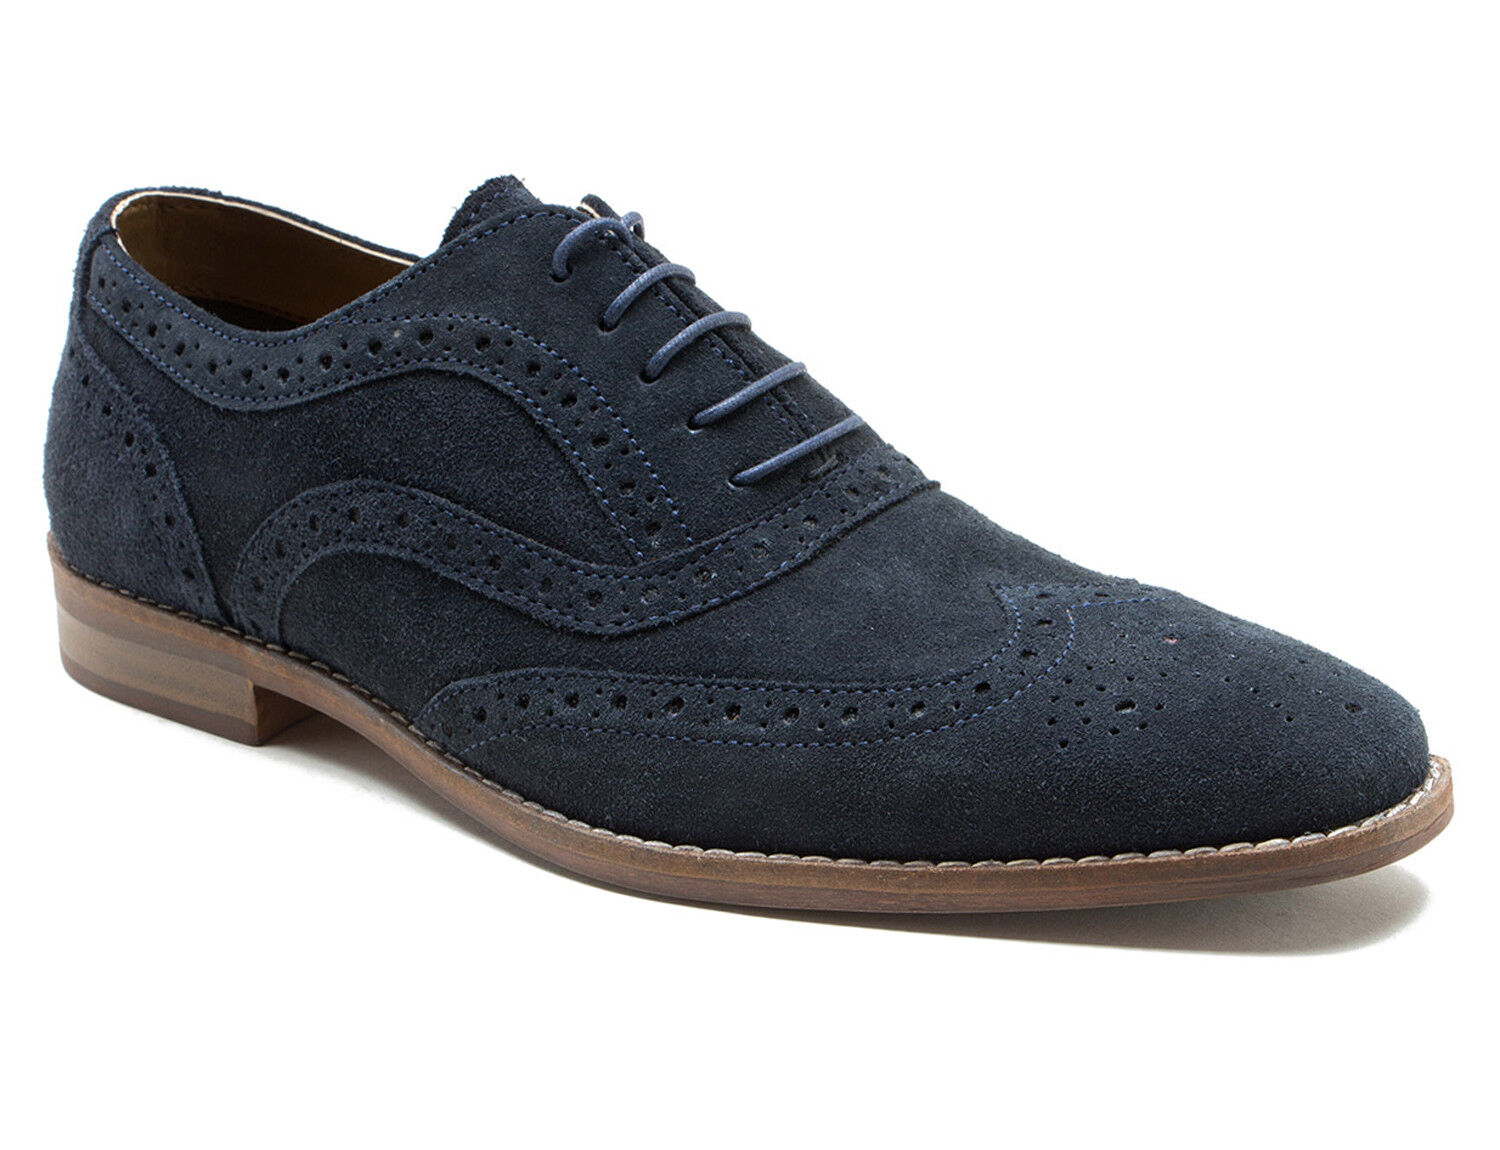 Red Tape Thorpe Navy Shoes Mens Suede Brogue Formal Shoes Navy 6bc8ff